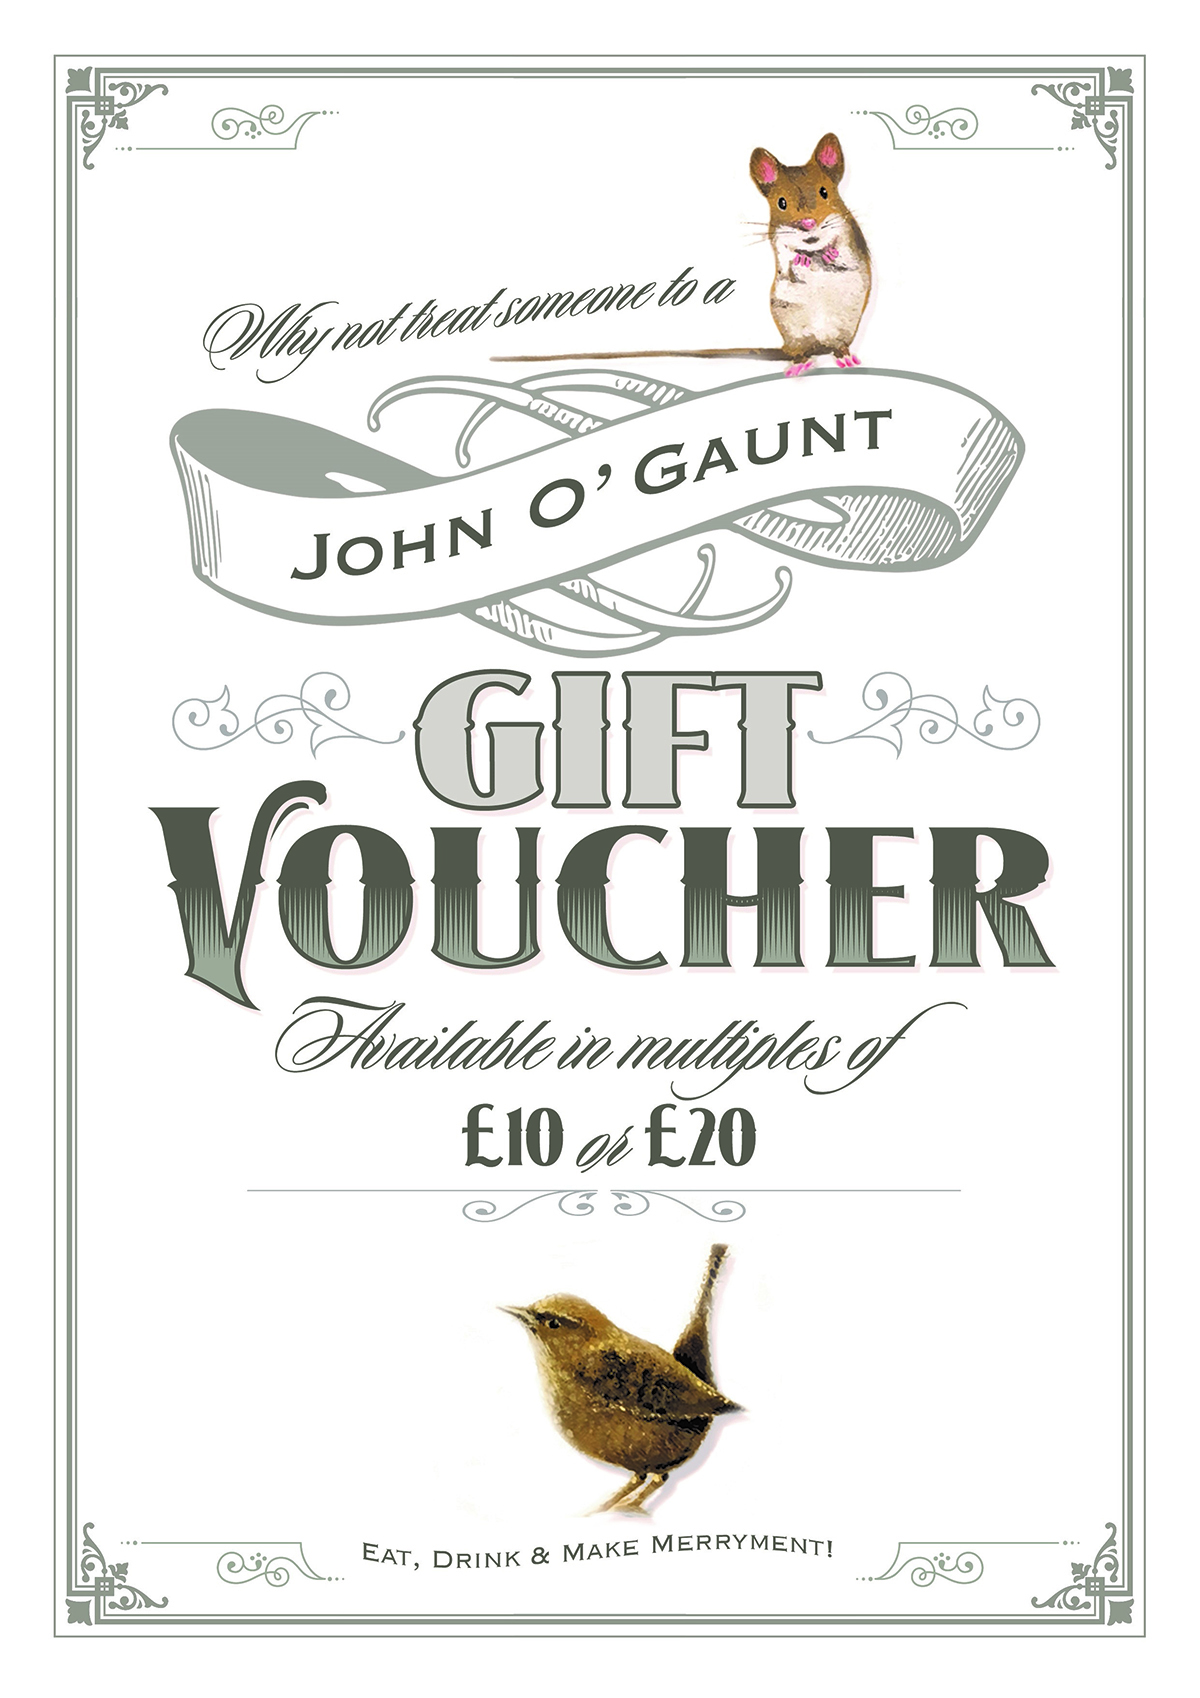 Food And Drink Voucher O